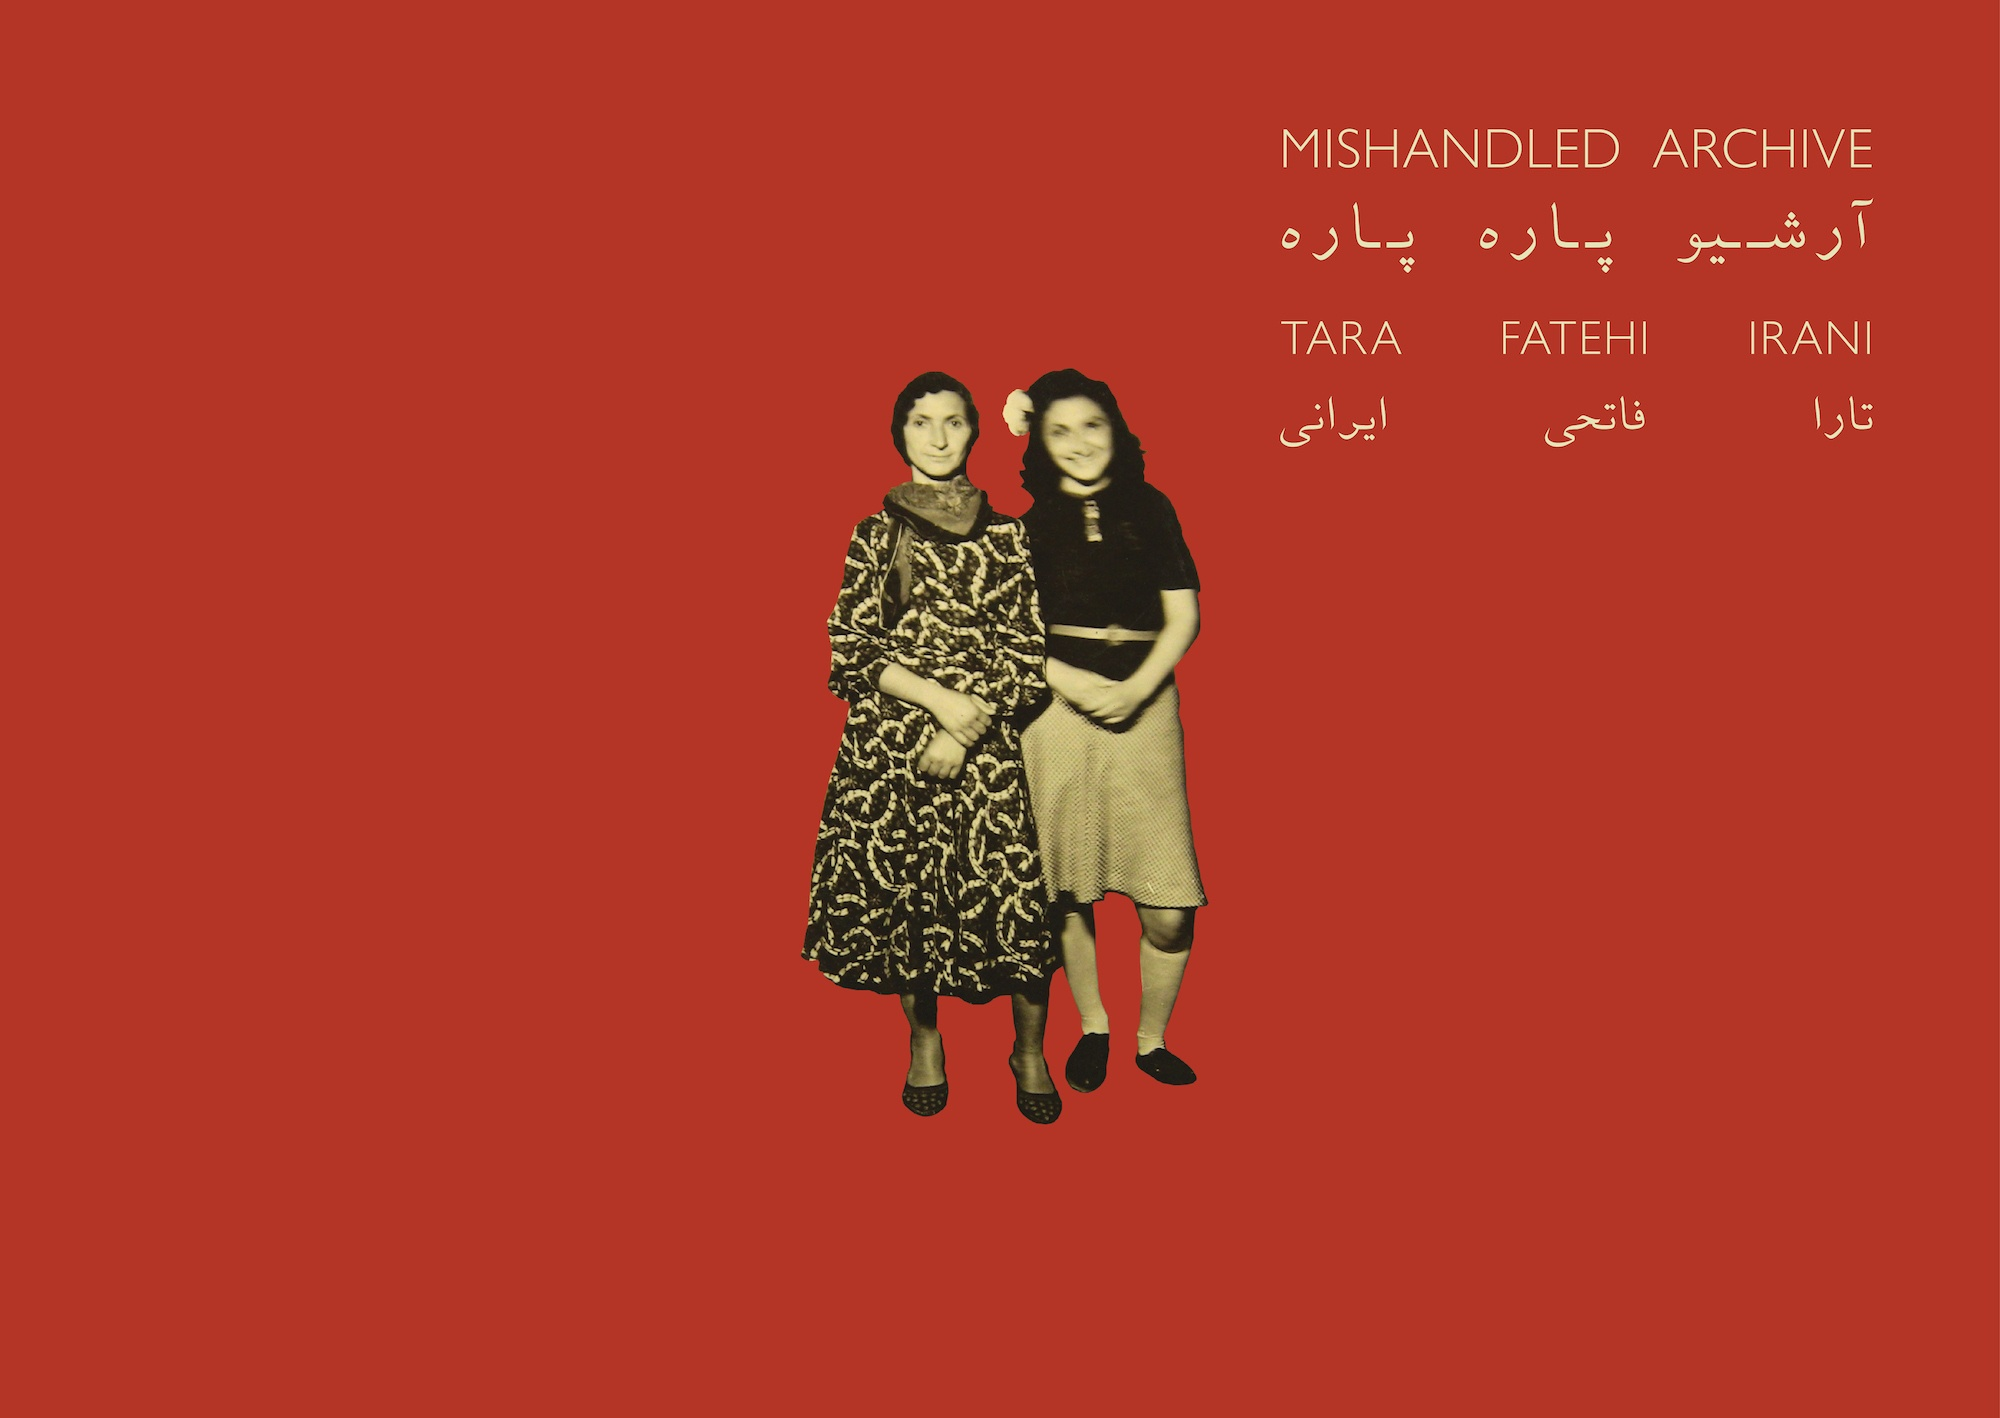 An image of the cover of 'Mishandled Archive', an archival cut out of two irani women on a red background.